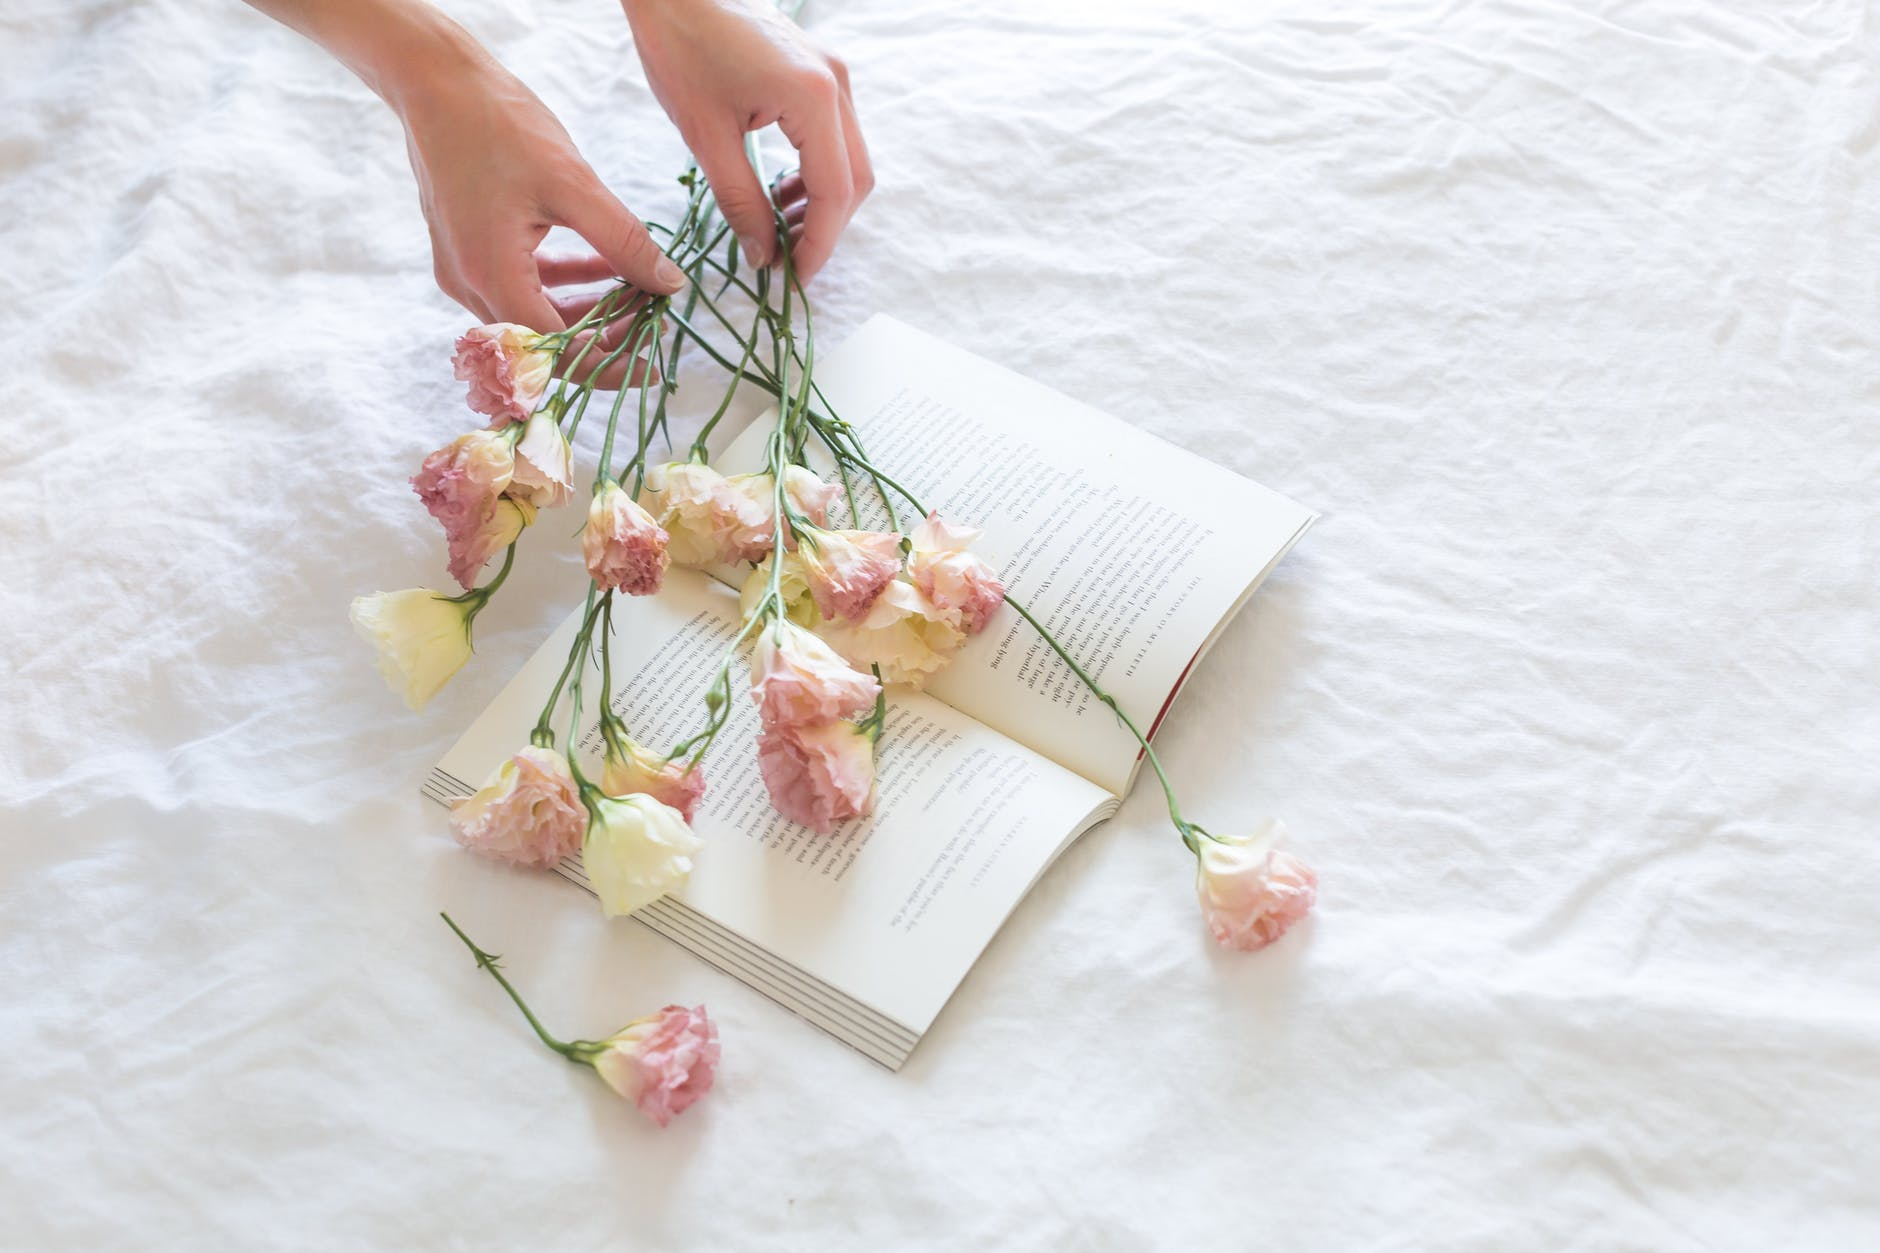 pink and white rose flowers on white printer book